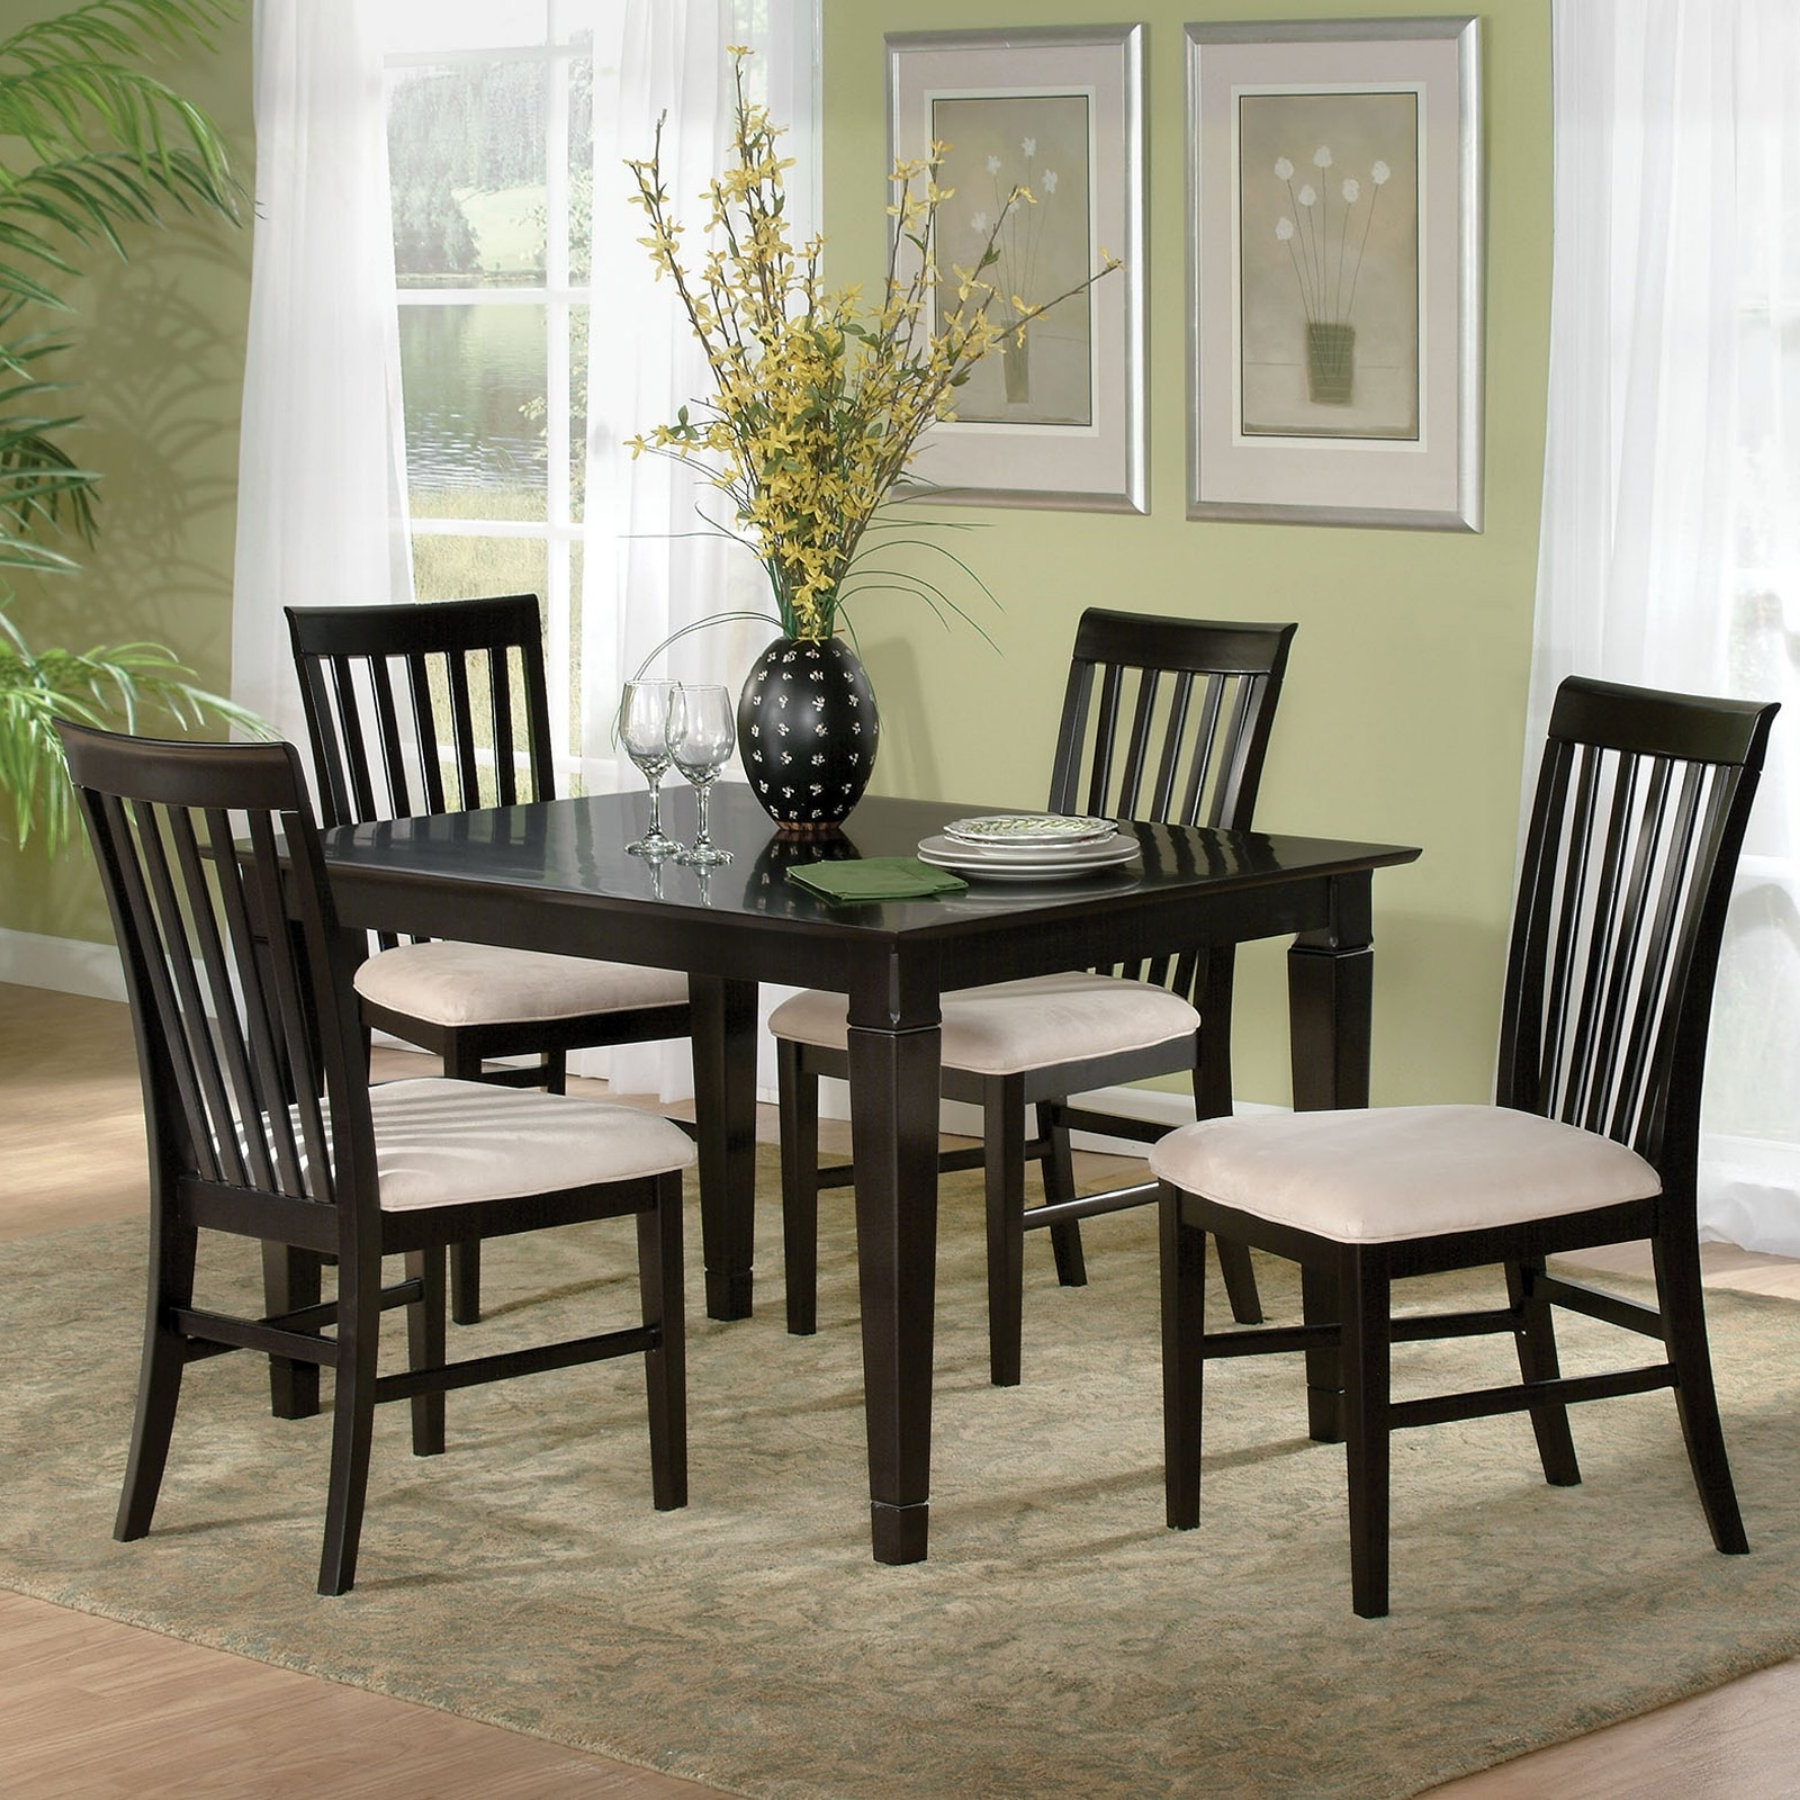 Favorite Atlantic Furniture Montego Bay 5 Piece Espresso Dining Table Set For Laurent 5 Piece Round Dining Sets With Wood Chairs (View 5 of 25)